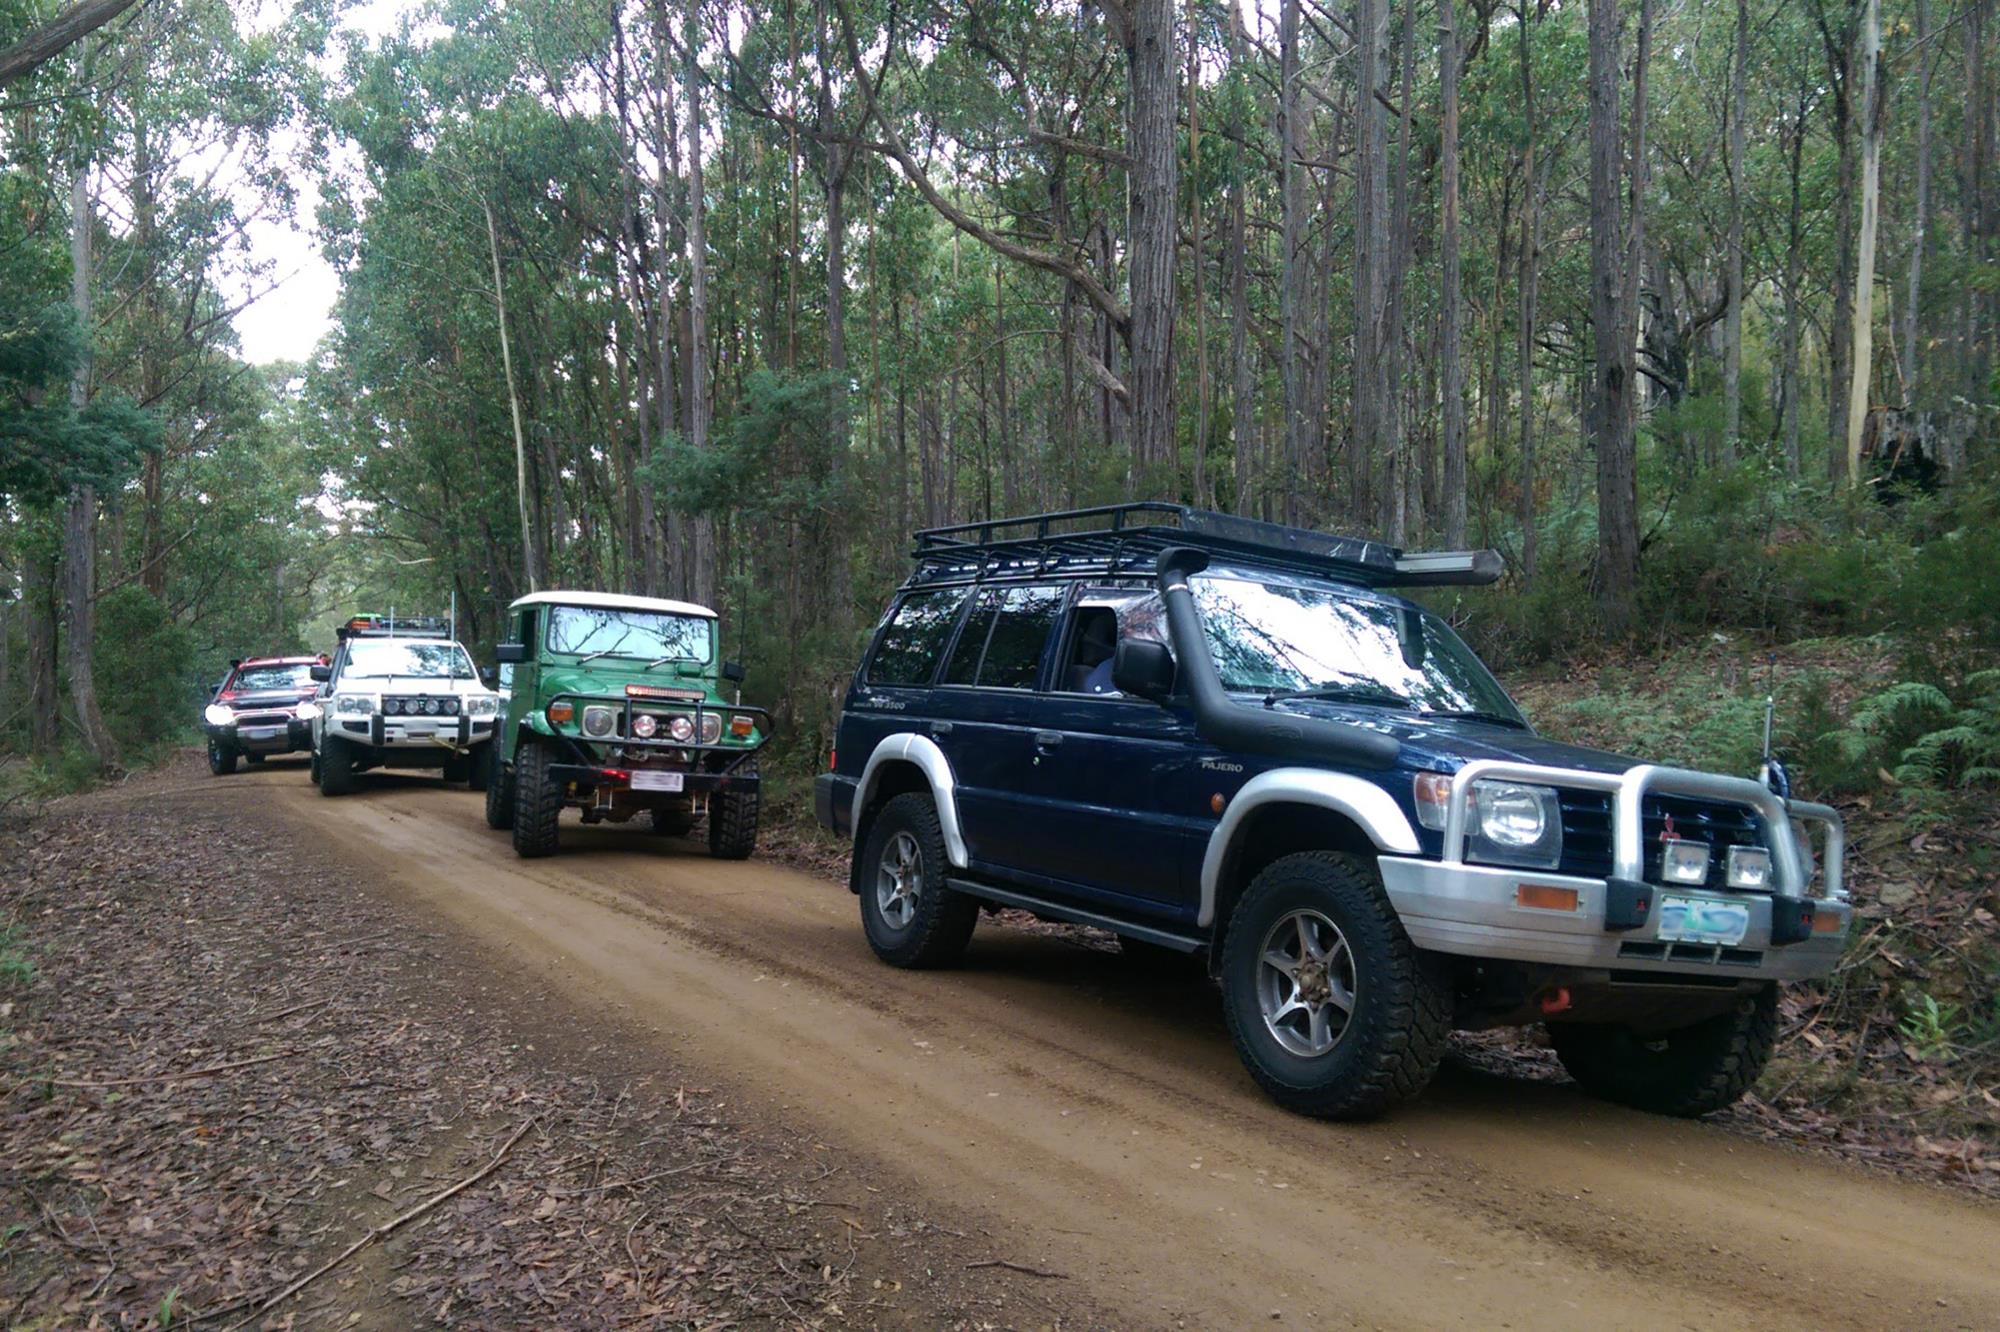 A convoy of recreational 4WD vehicles sriving through tall forest on the Jefferys Track